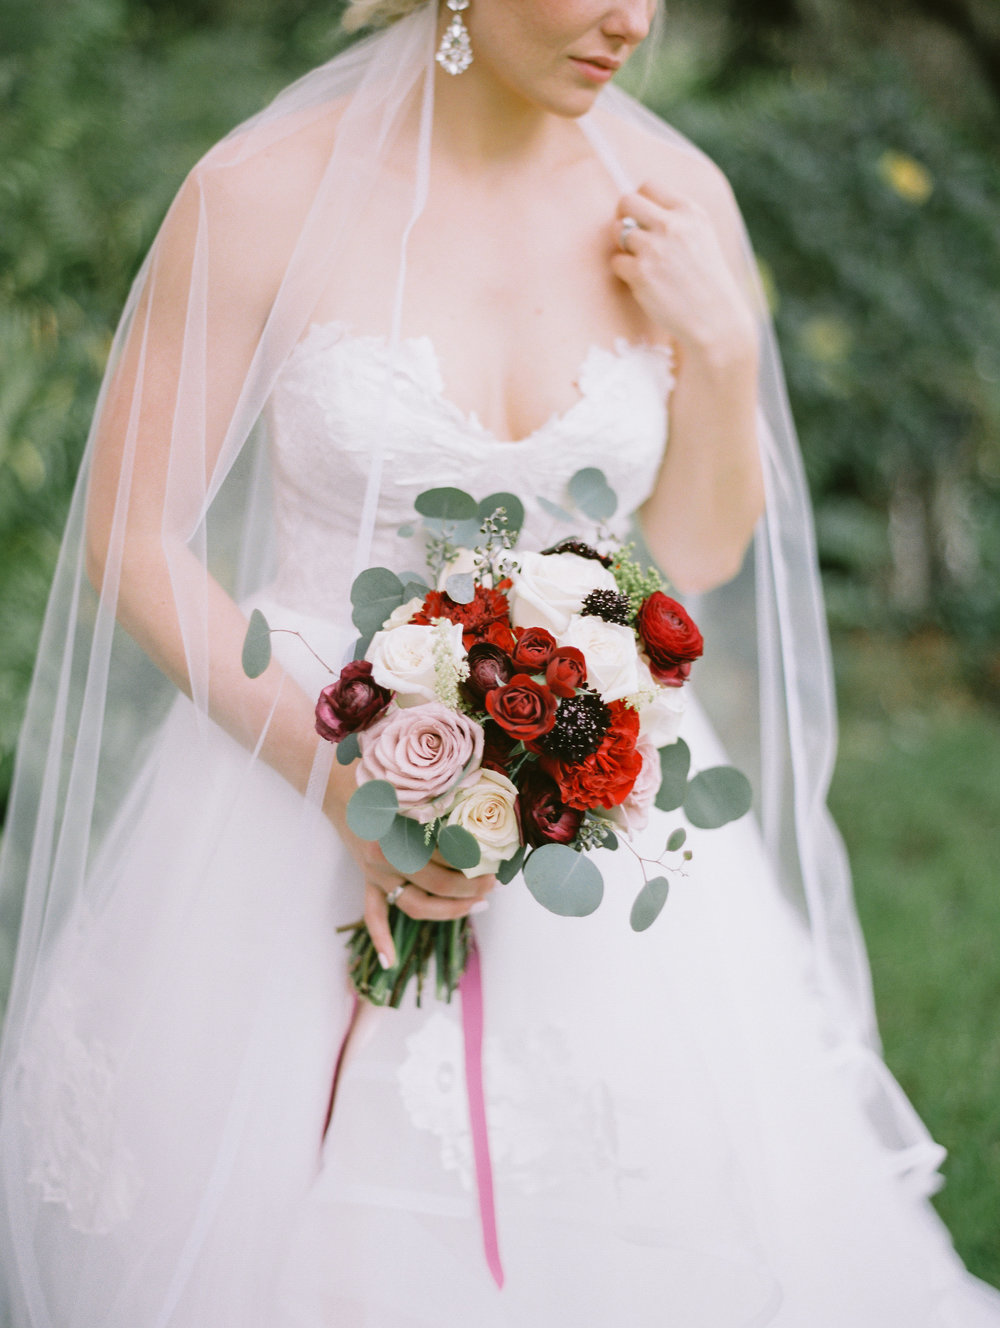 Bridal bouquet comprised of blush, red and ivory garden roses